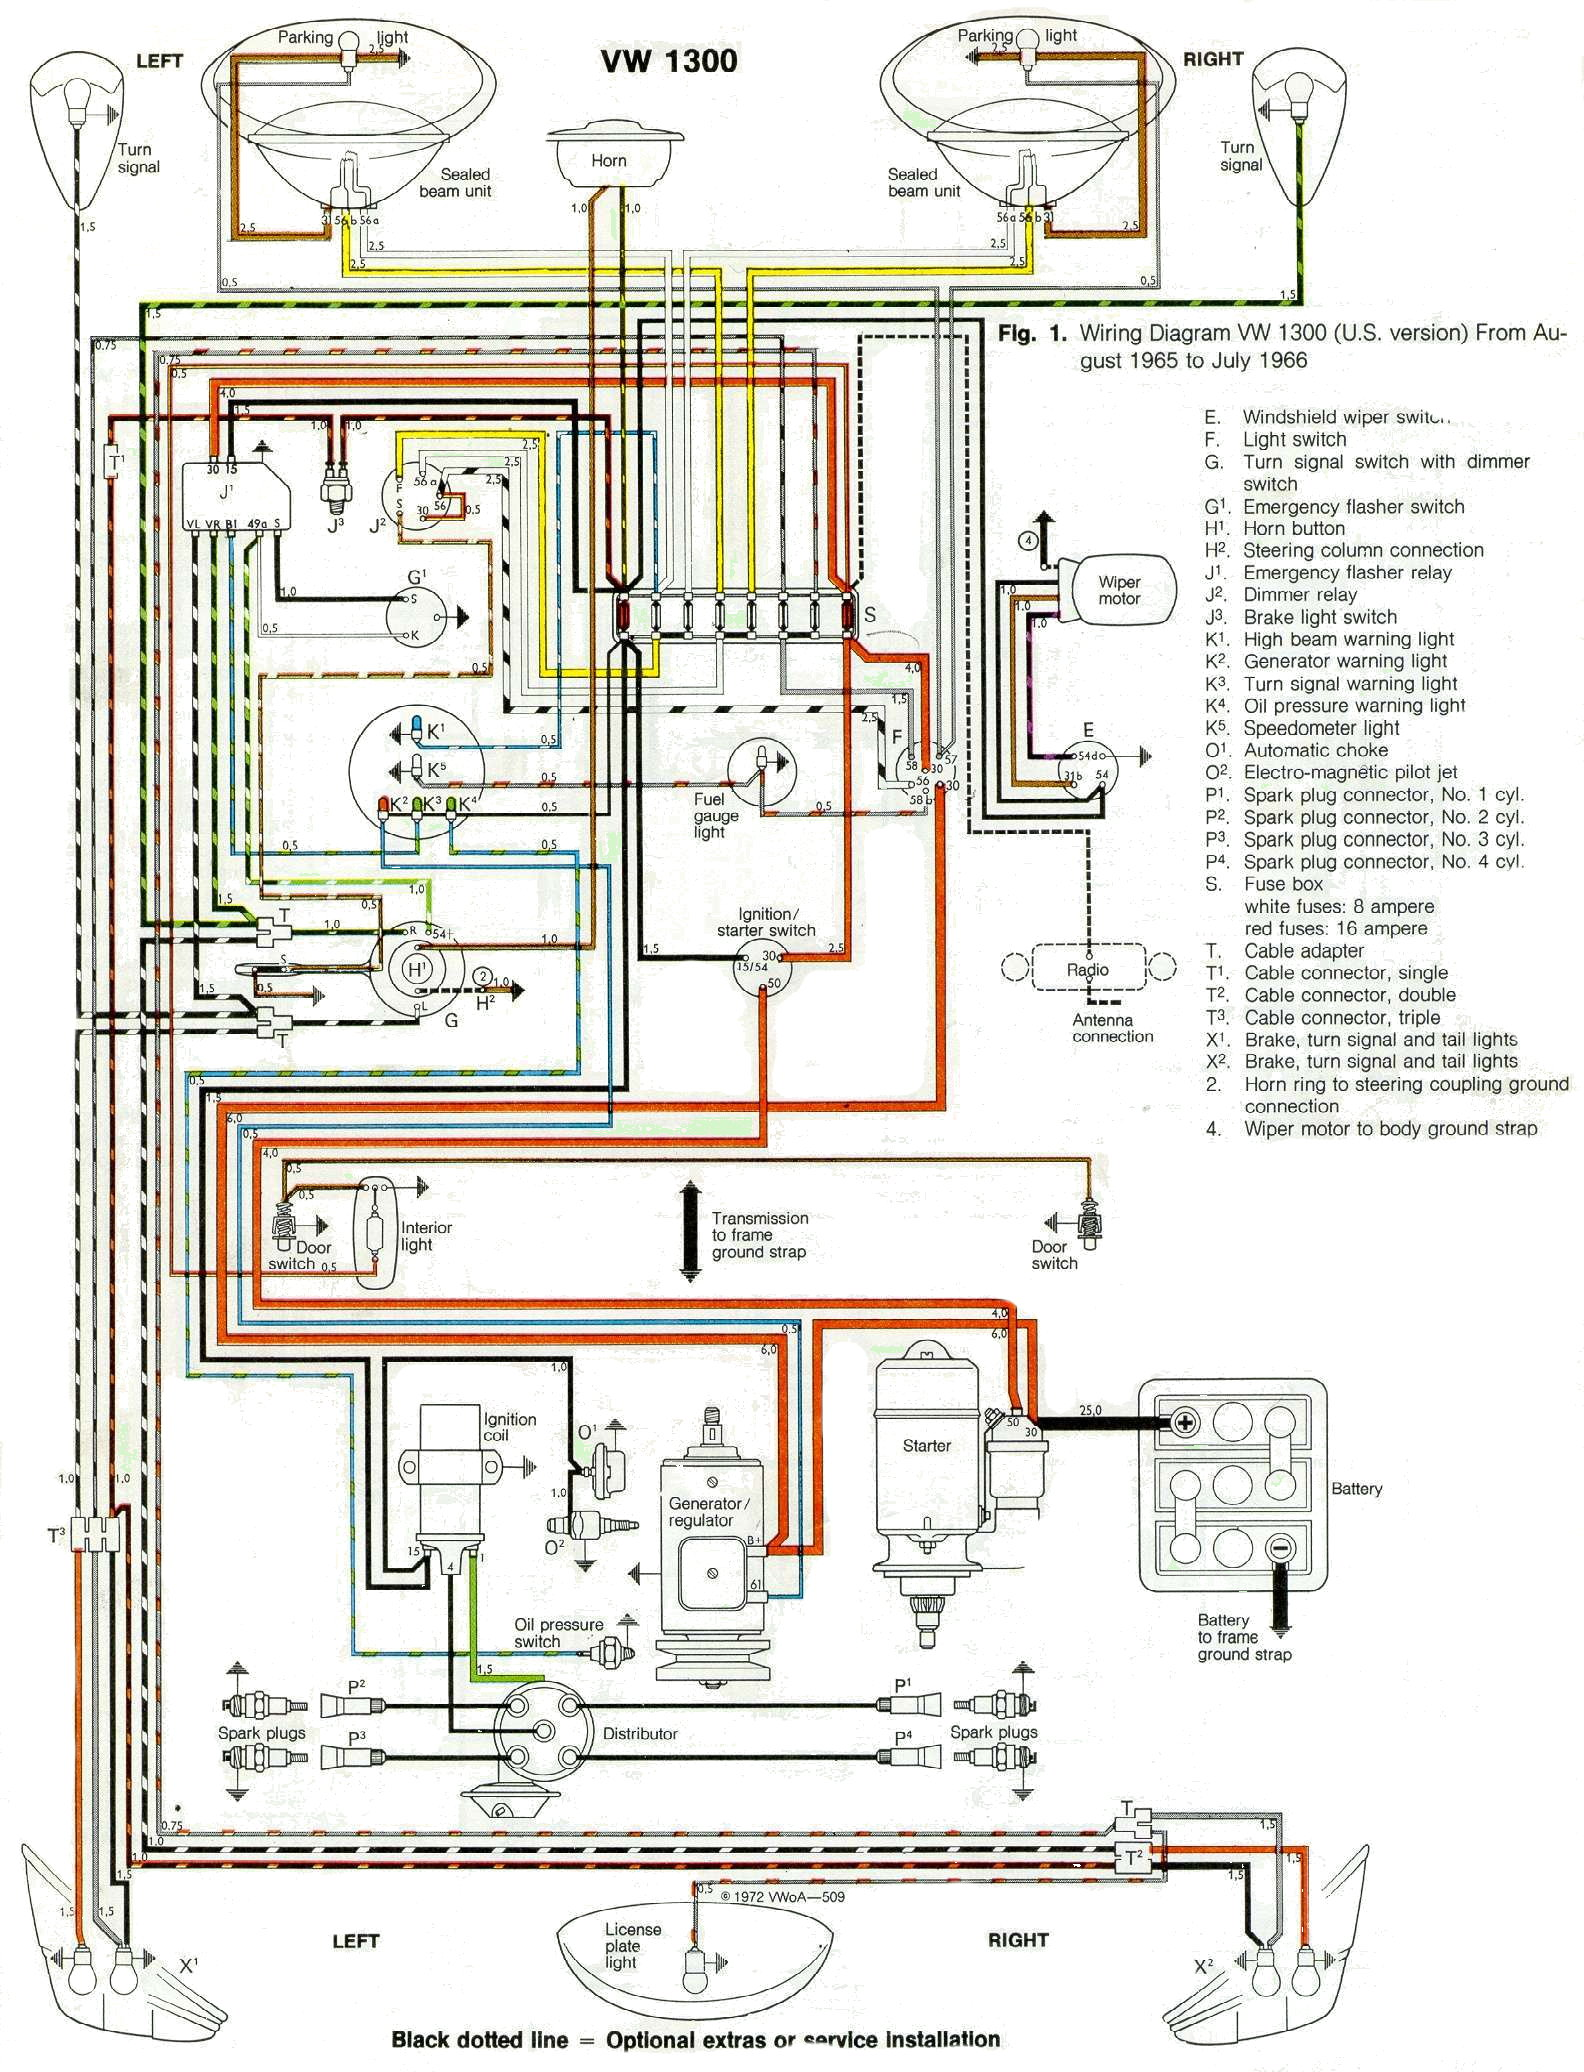 classic beetle wiring diagram complete wiring diagrams u2022 rh brutallyhonest co VW Bus Wiring Diagram VW Bus Wiring Diagram